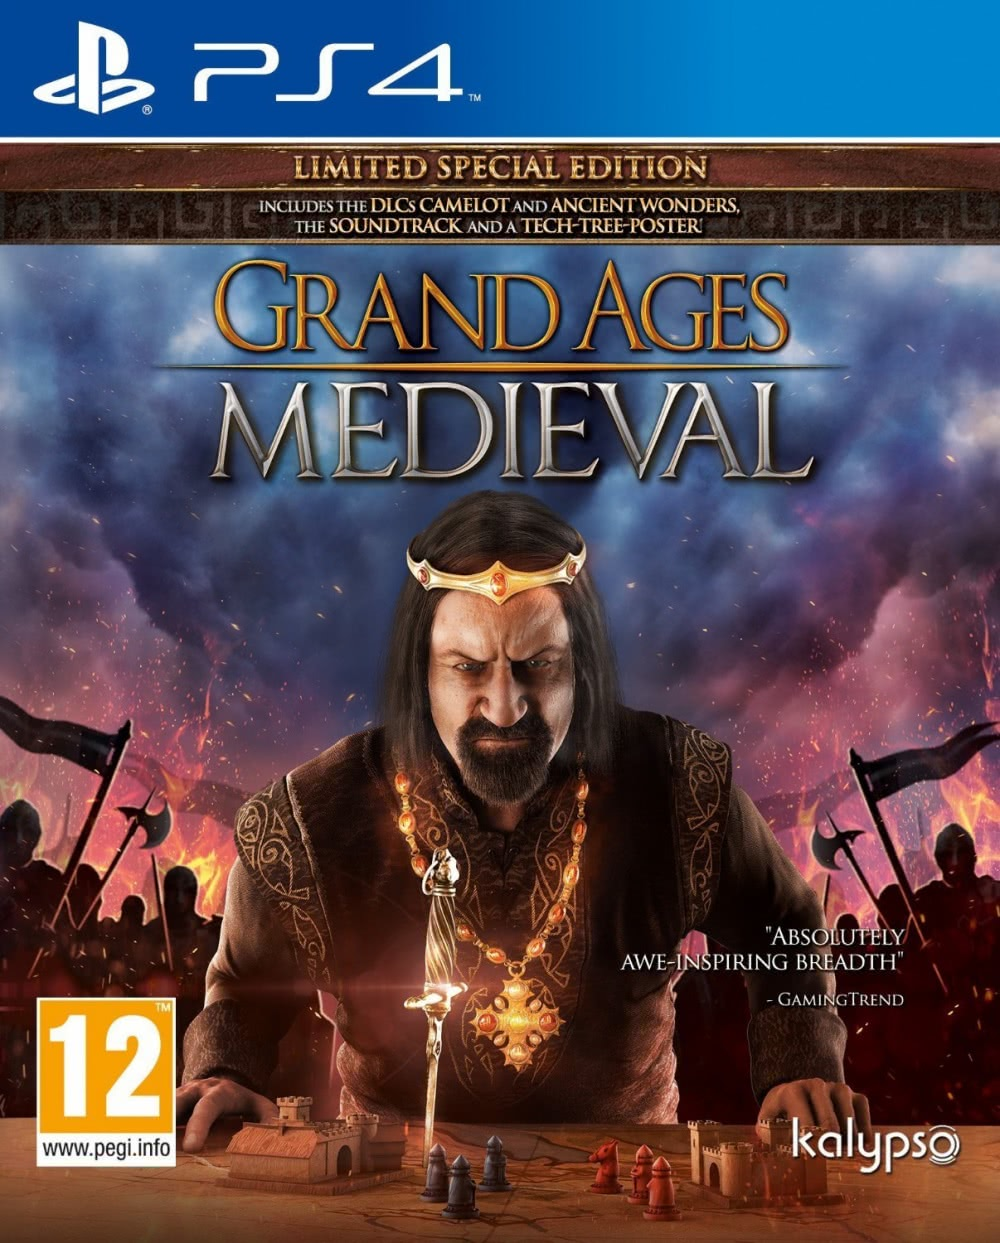 Grand Ages: Medieval Limited Special Ed. (PS4)